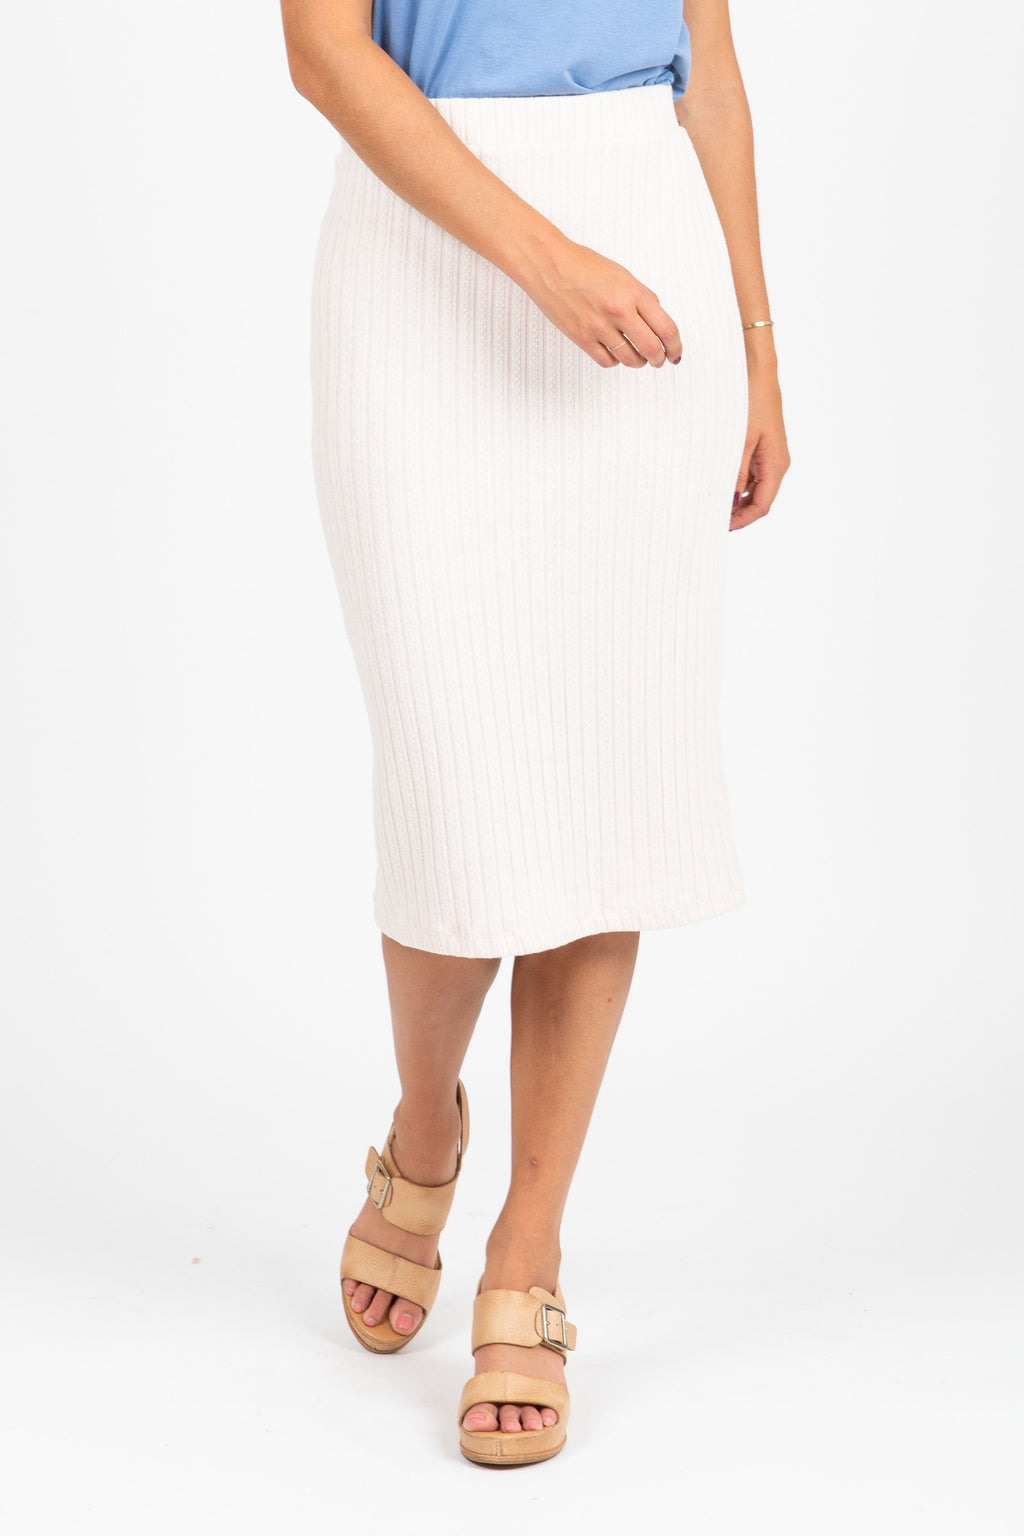 The Record Ribbed Pencil Skirt in Cream